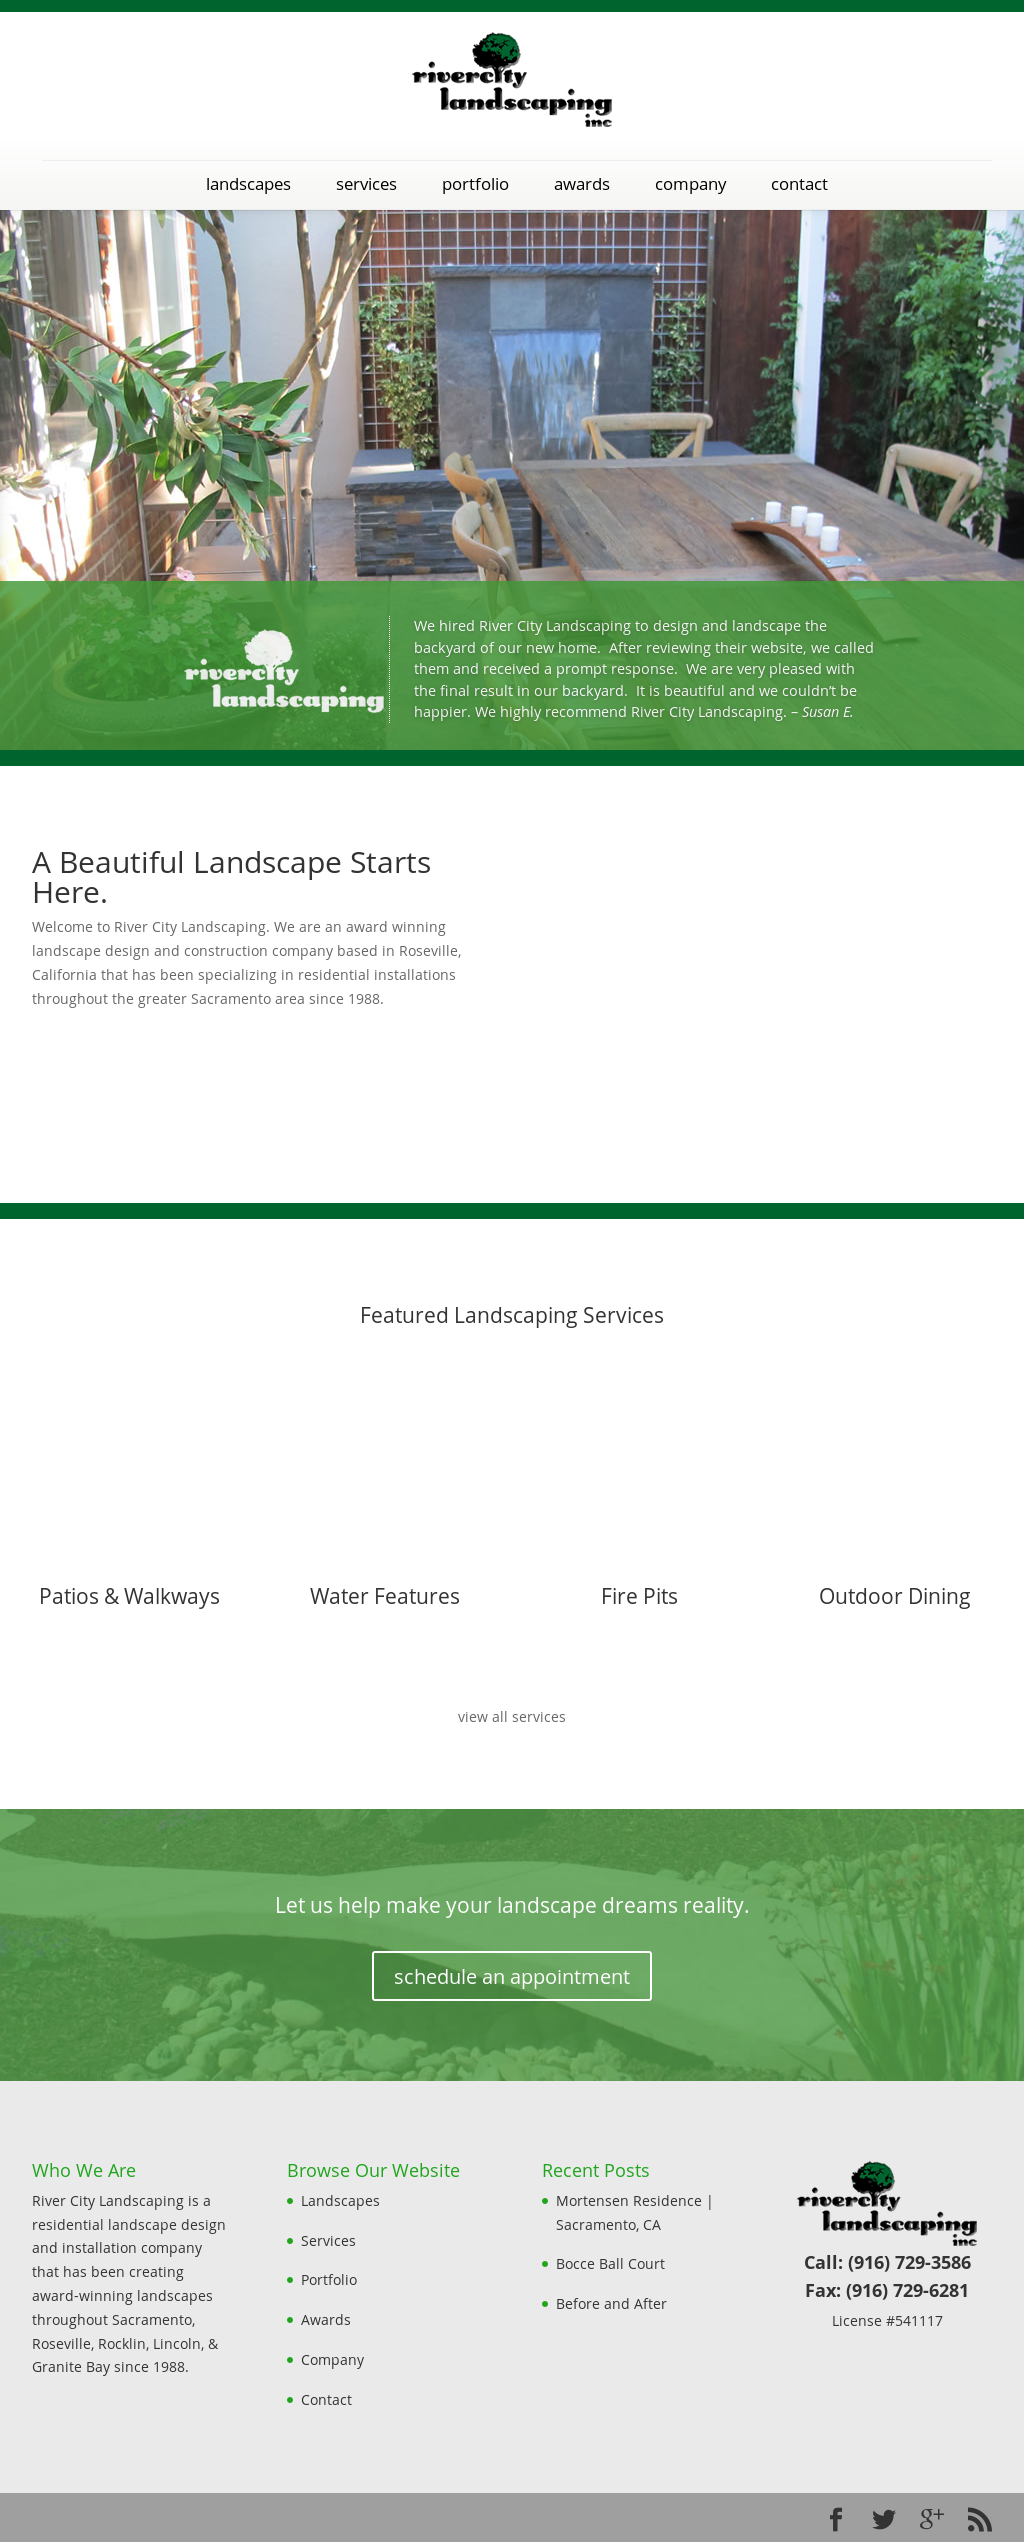 Website History - River City Landscaping Competitors, Revenue And Employees - Owler